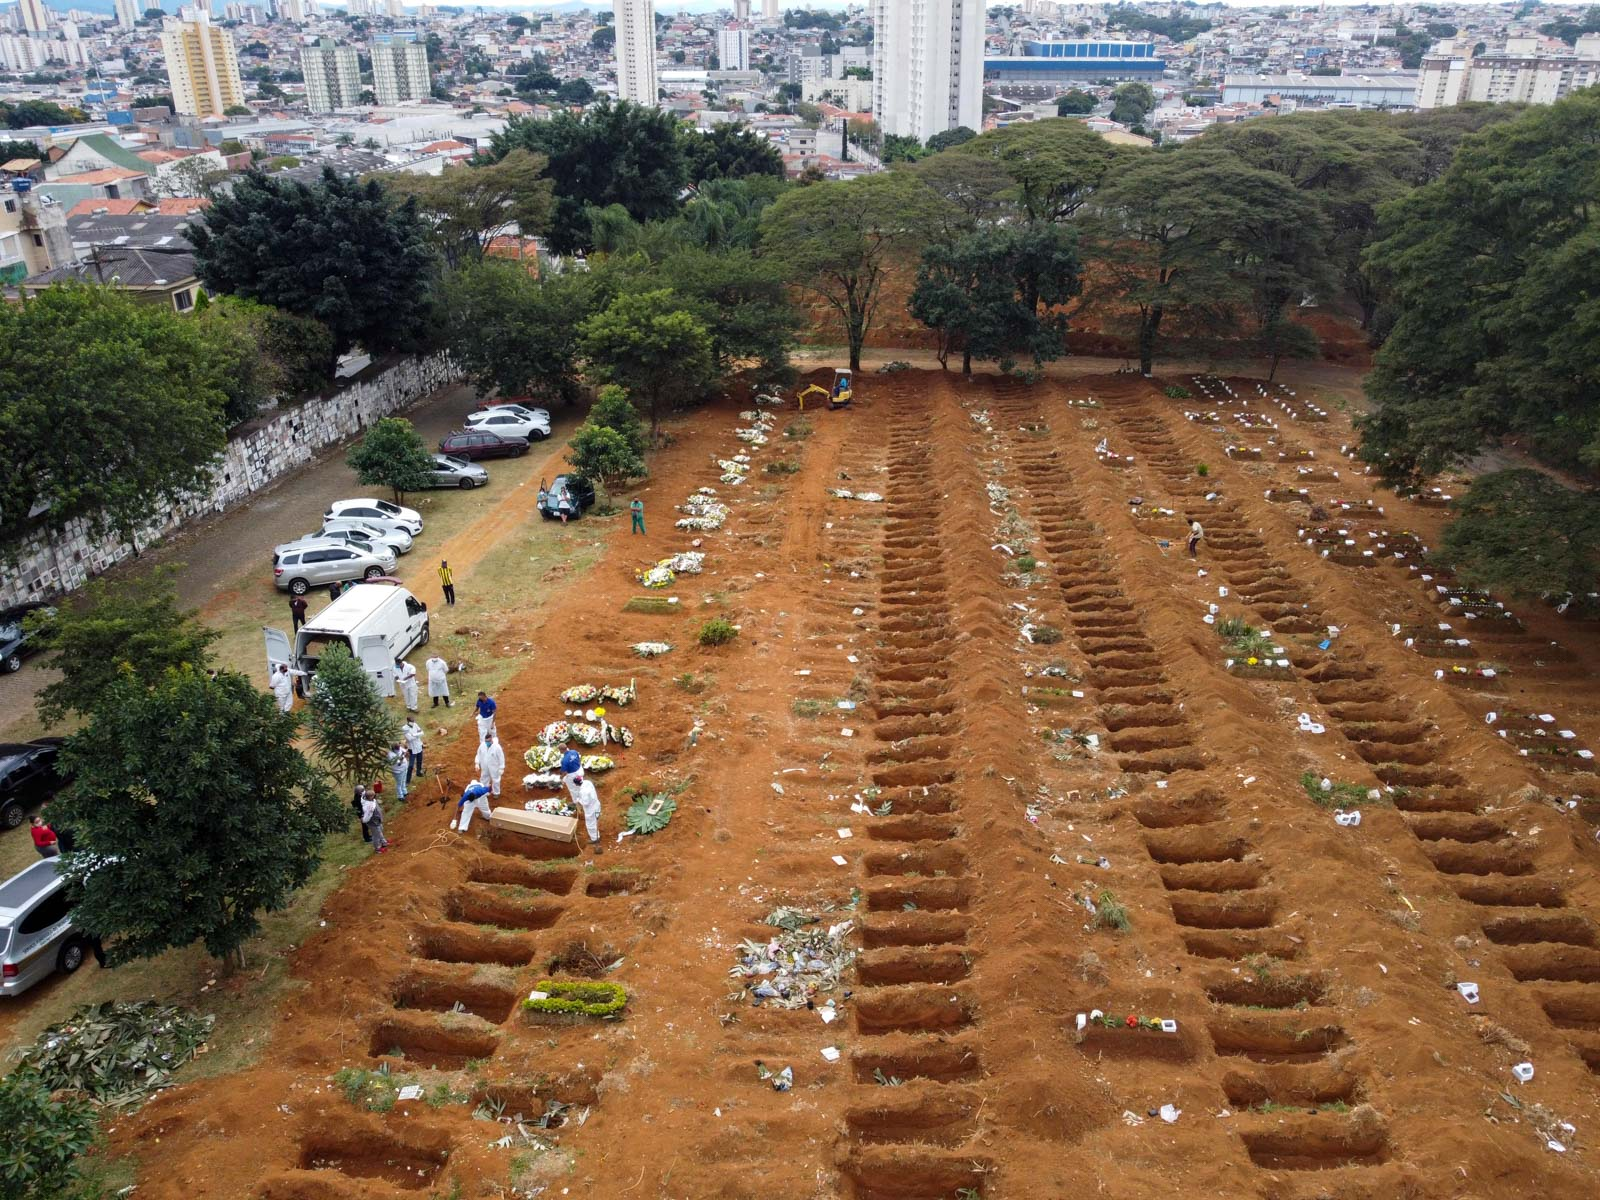 23 May 2020: An aerial view of the cemetery in Vila Formosa in São Paulo, Brazil, where the bodies of Covid-19 victims are buried. (Photograph by Marcello Zambrana/ Anadolu Agency via Getty Images)